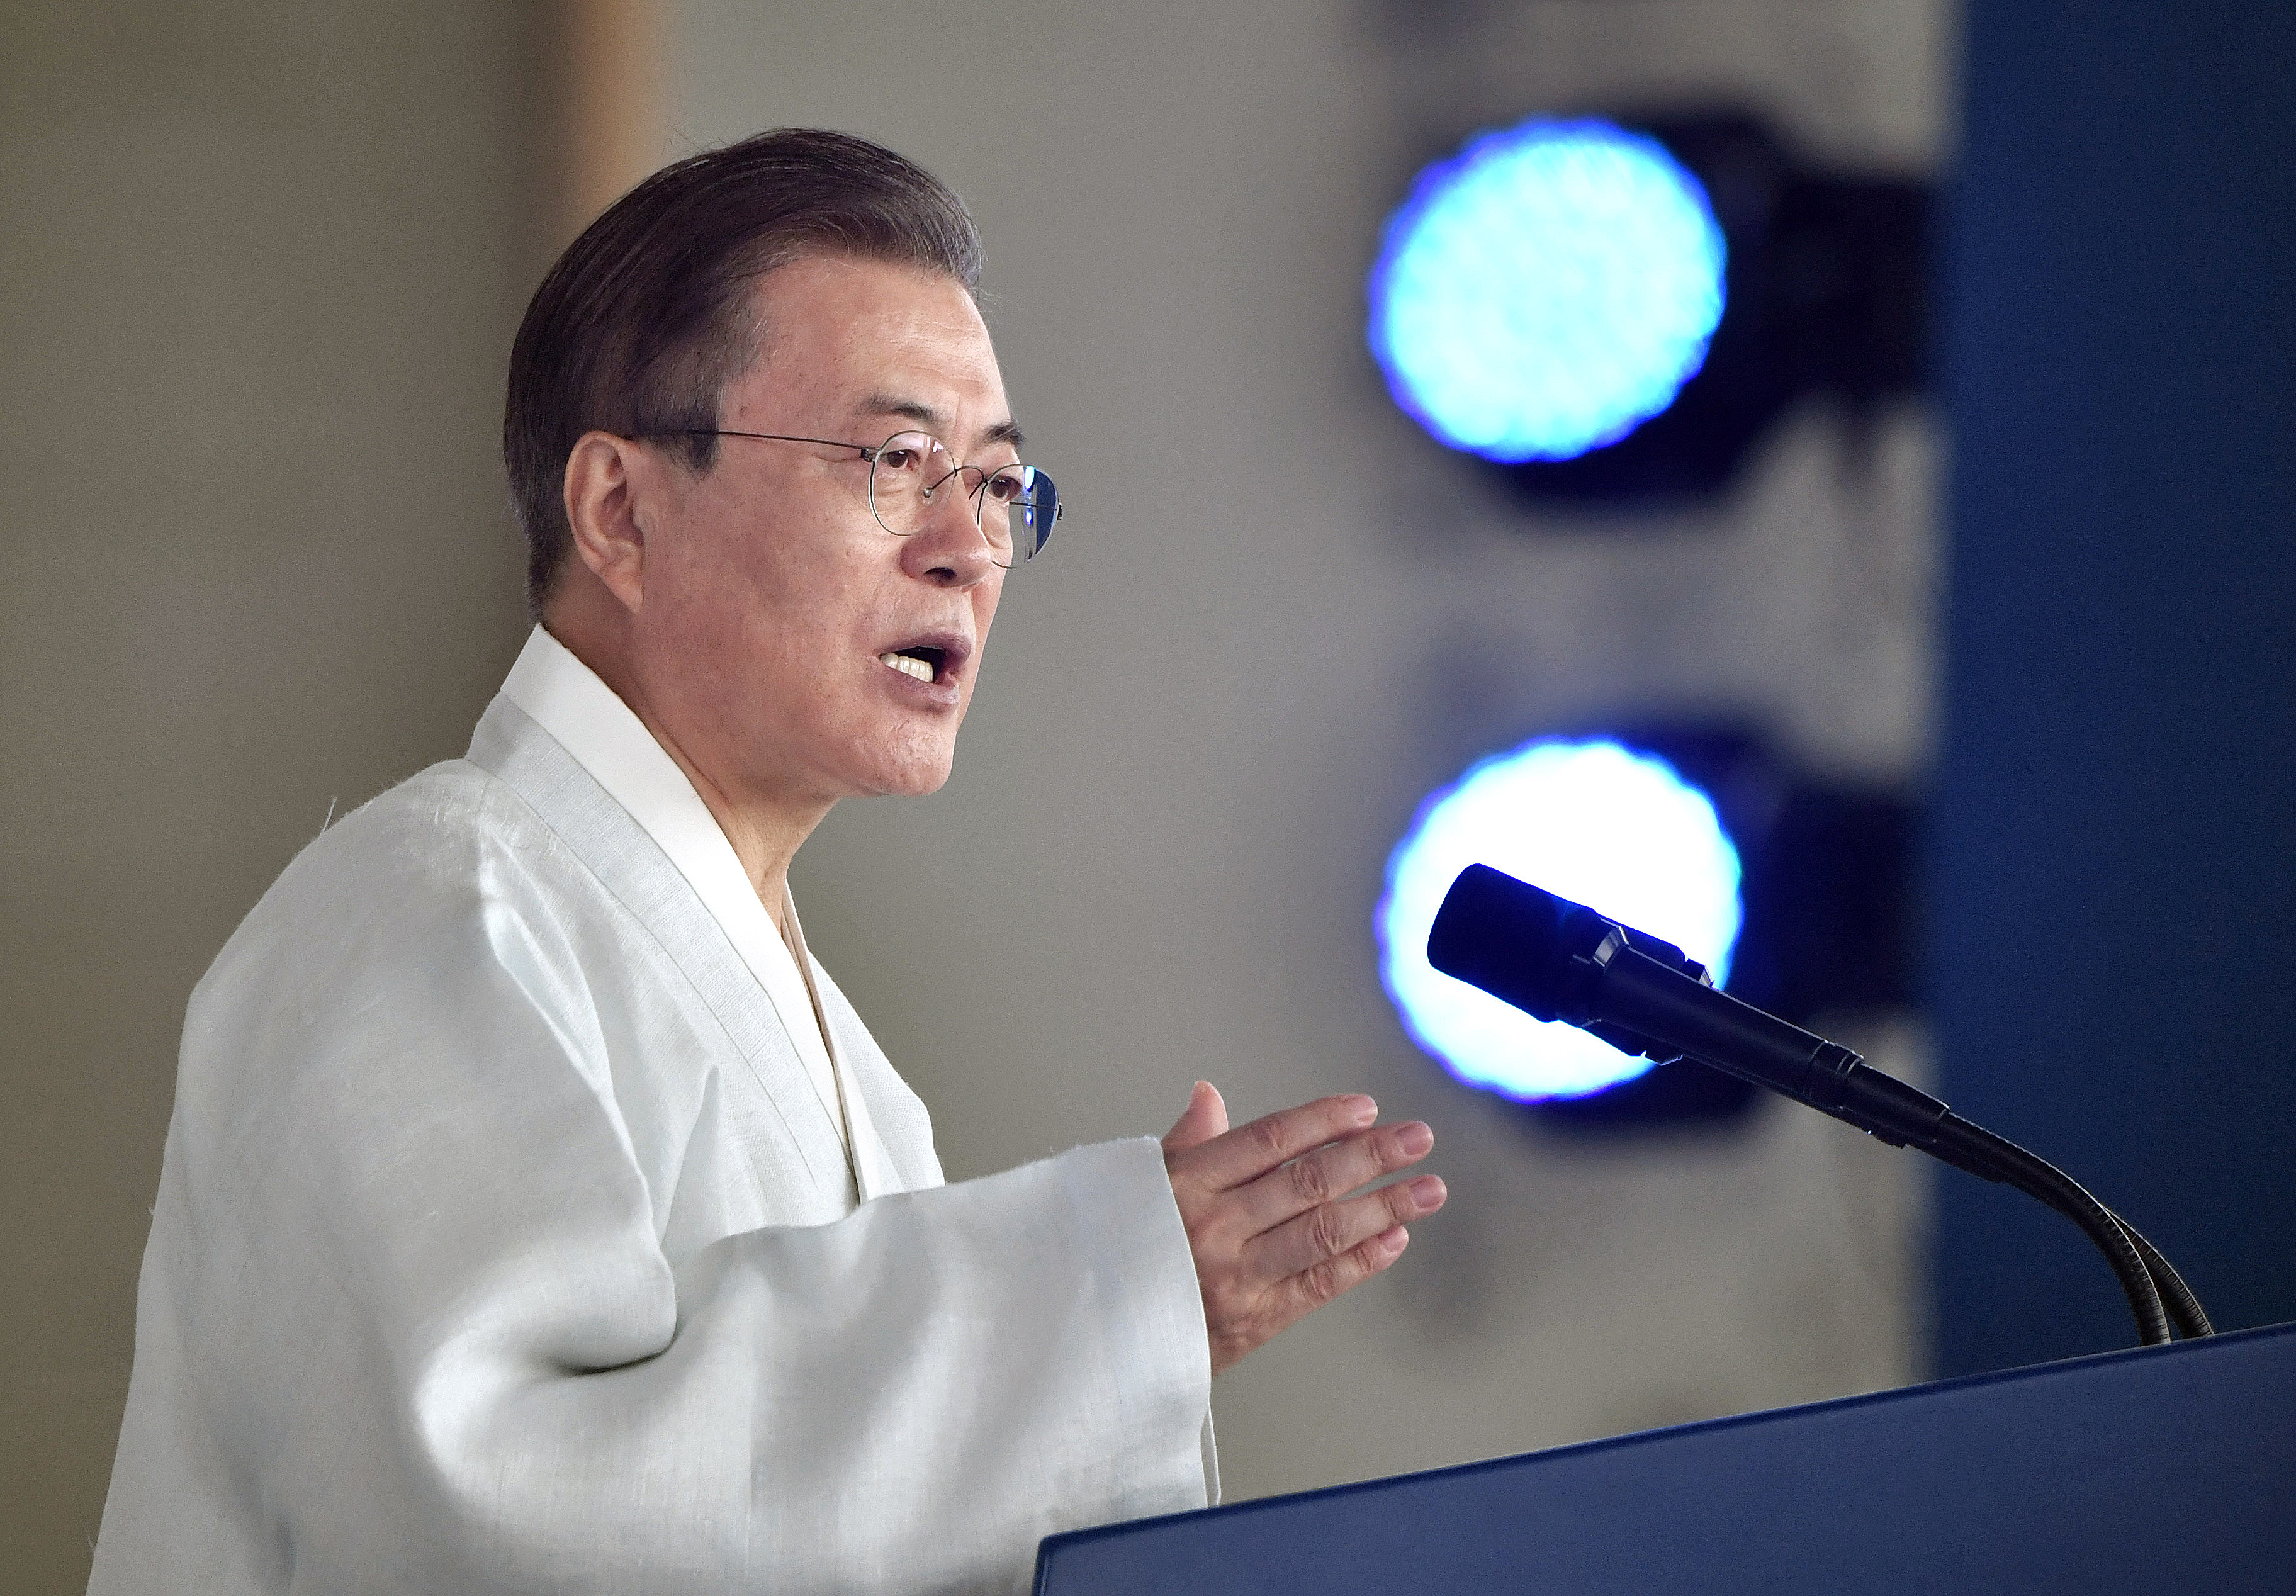 South Korean President Moon Jae-in at a podium delivering his speech.